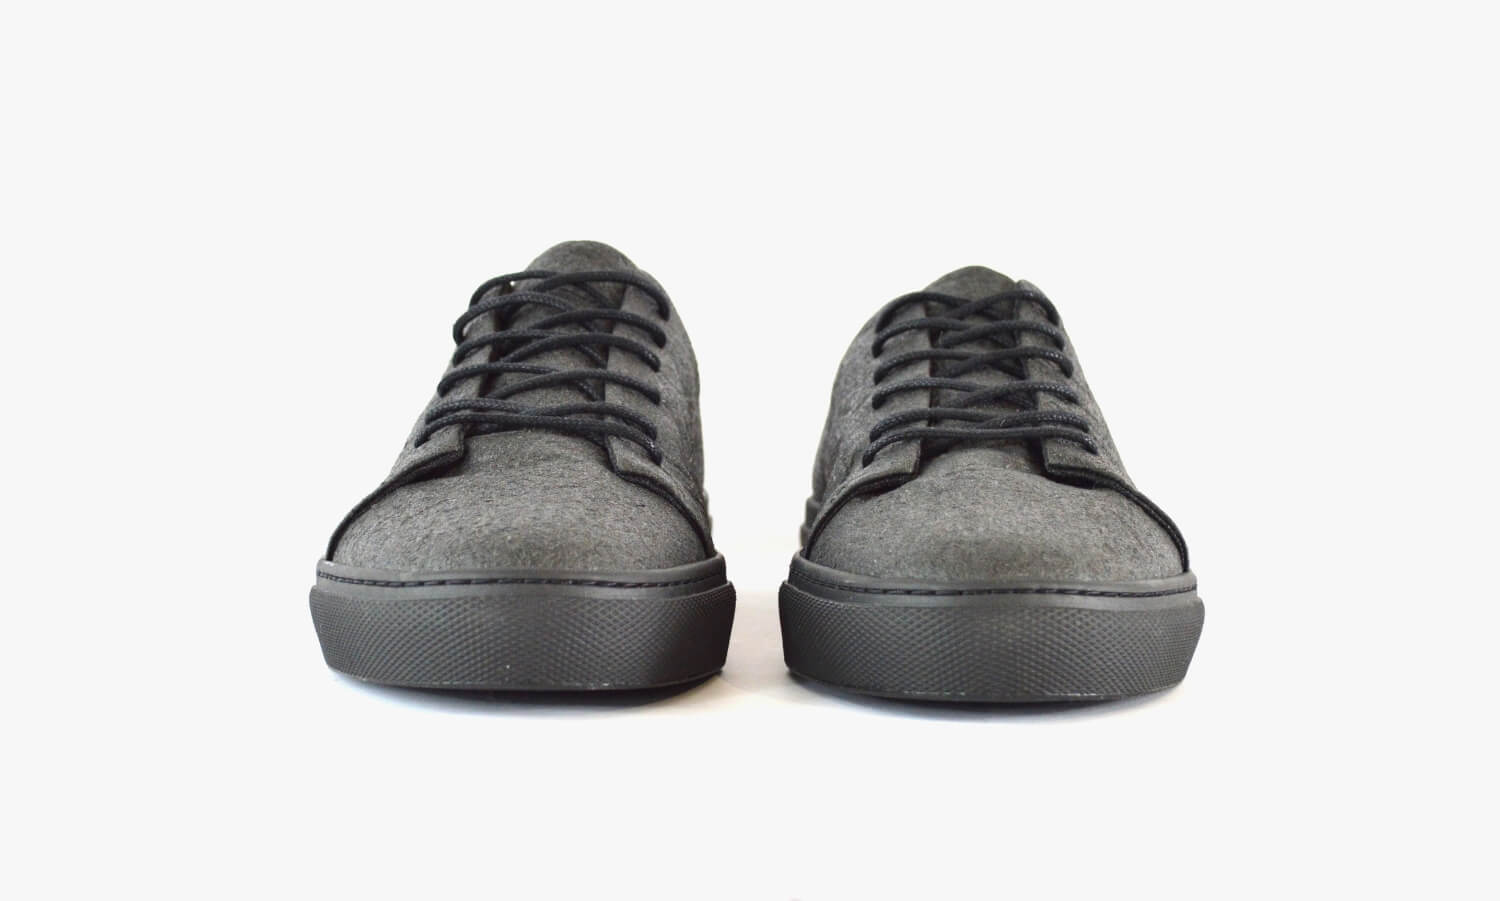 '02 Black Sneaker Unisex von SORBAS Shoes